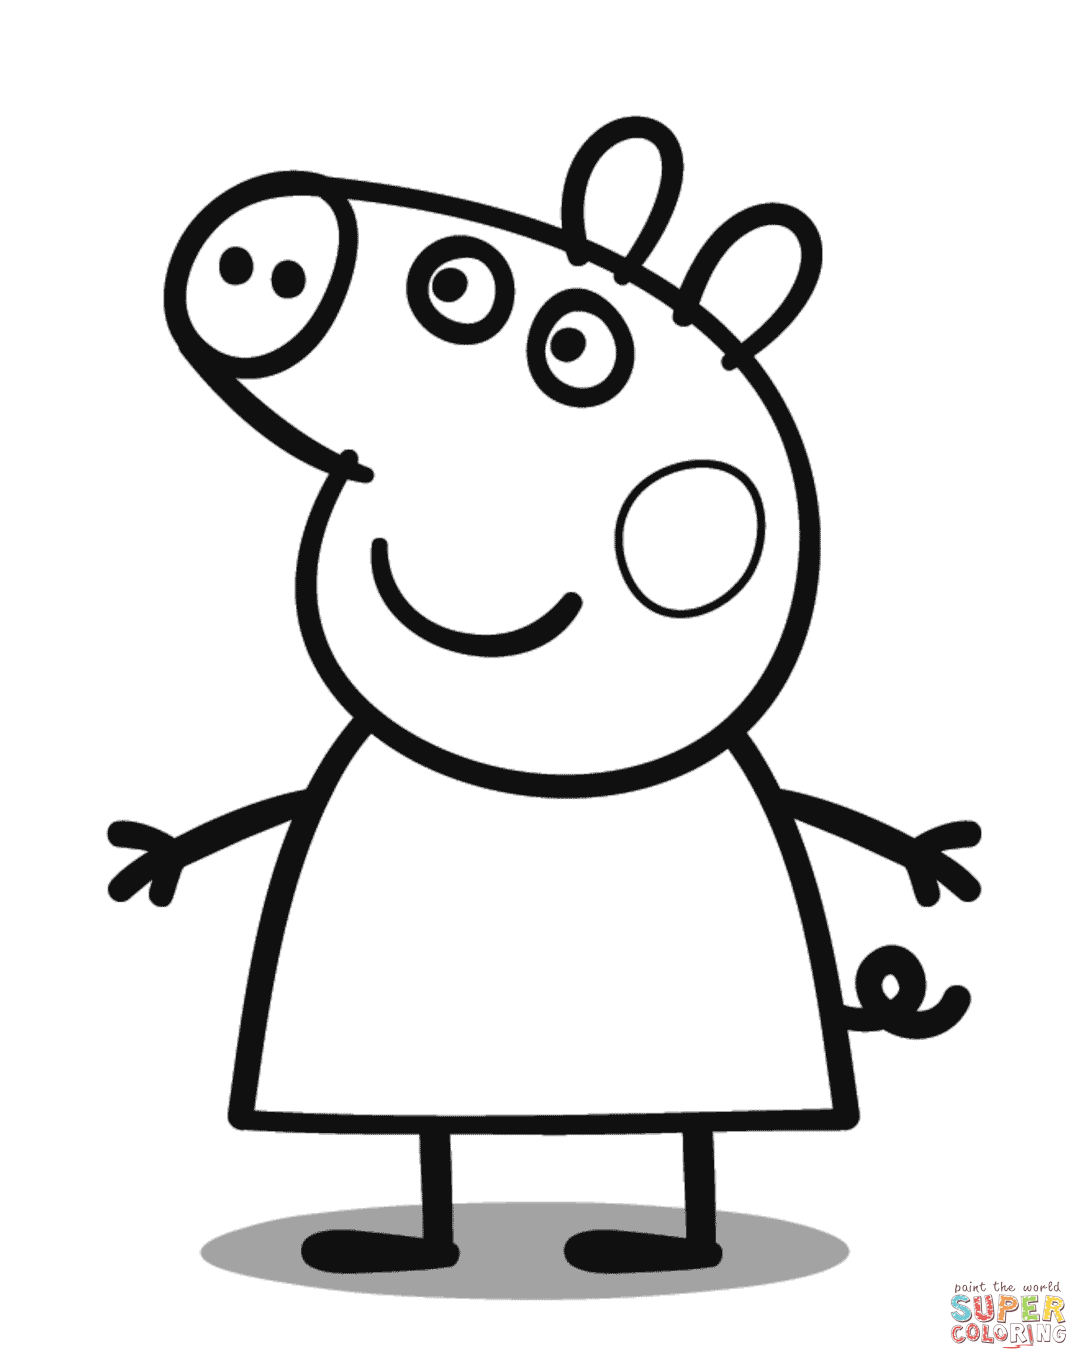 Peppa Pig coloring pages.